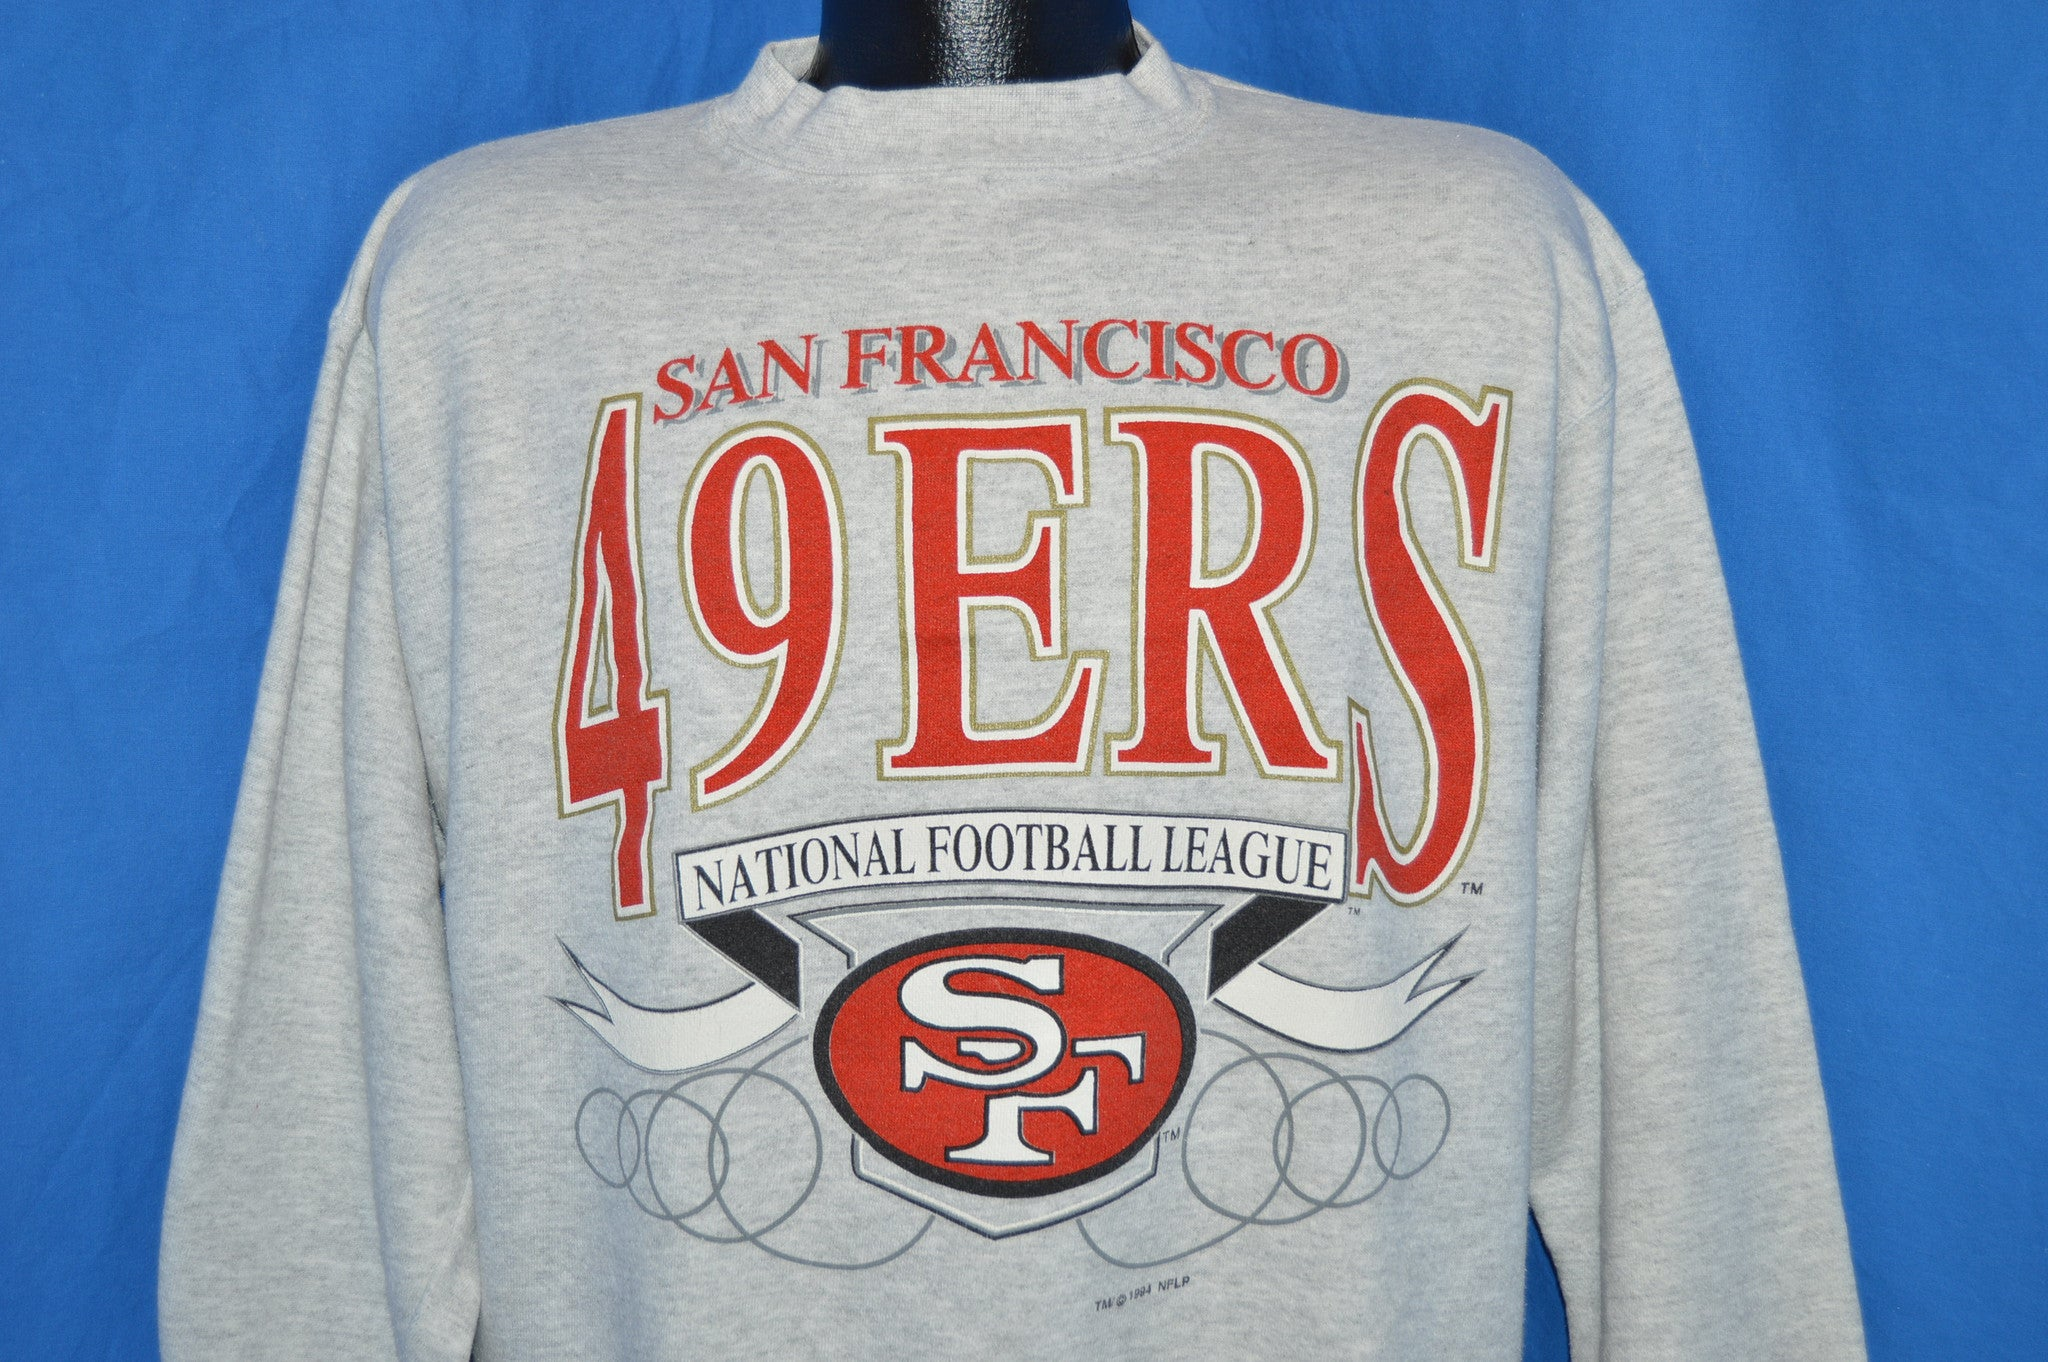 90s San Francisco 49ers Sweatshirt Large - The Captains Vintage 945442473